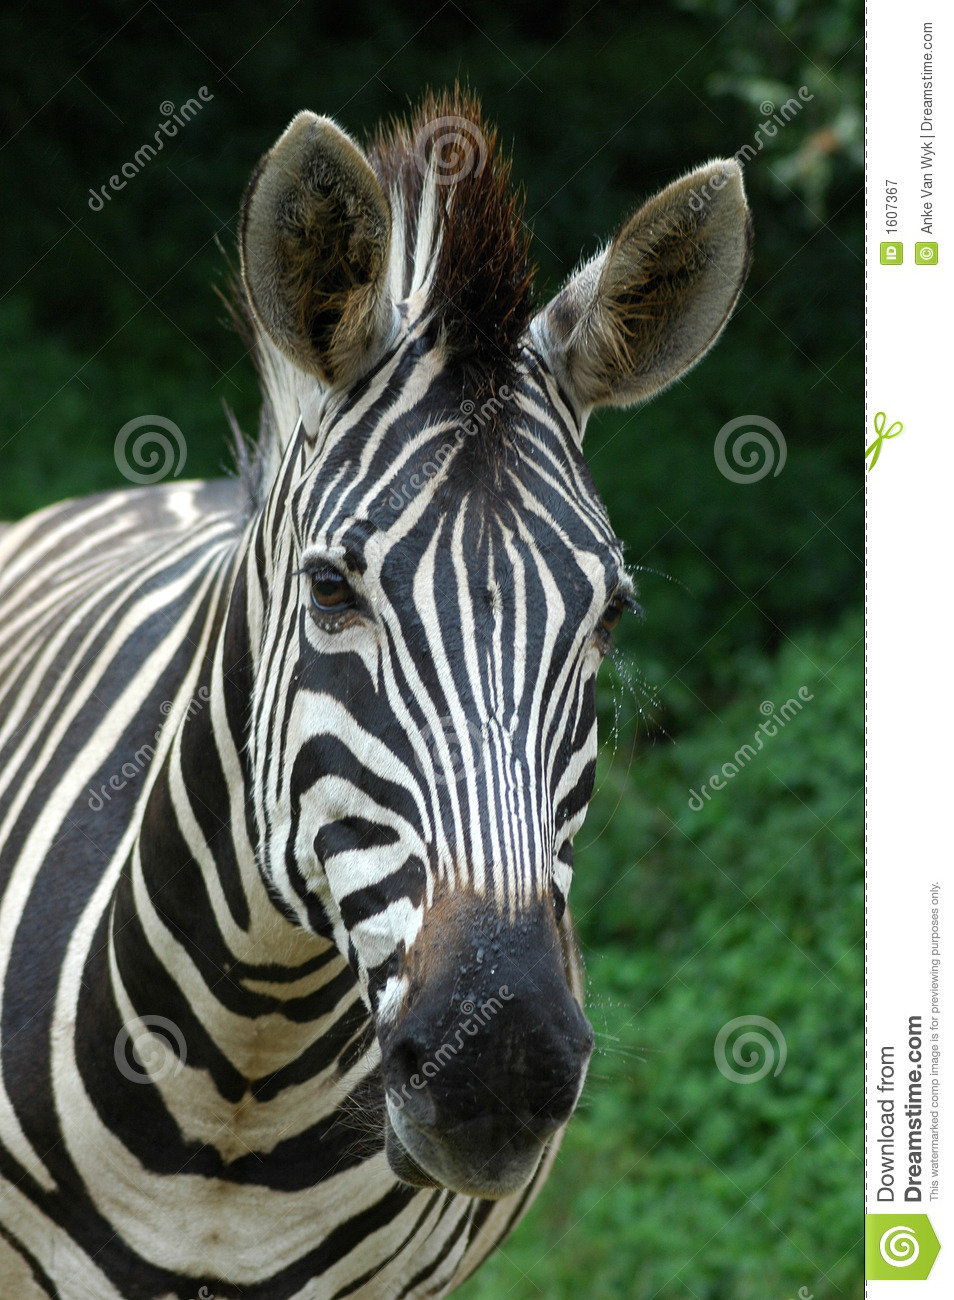 Zebra Face Royalty Free Stock Photography - Image: 1607367